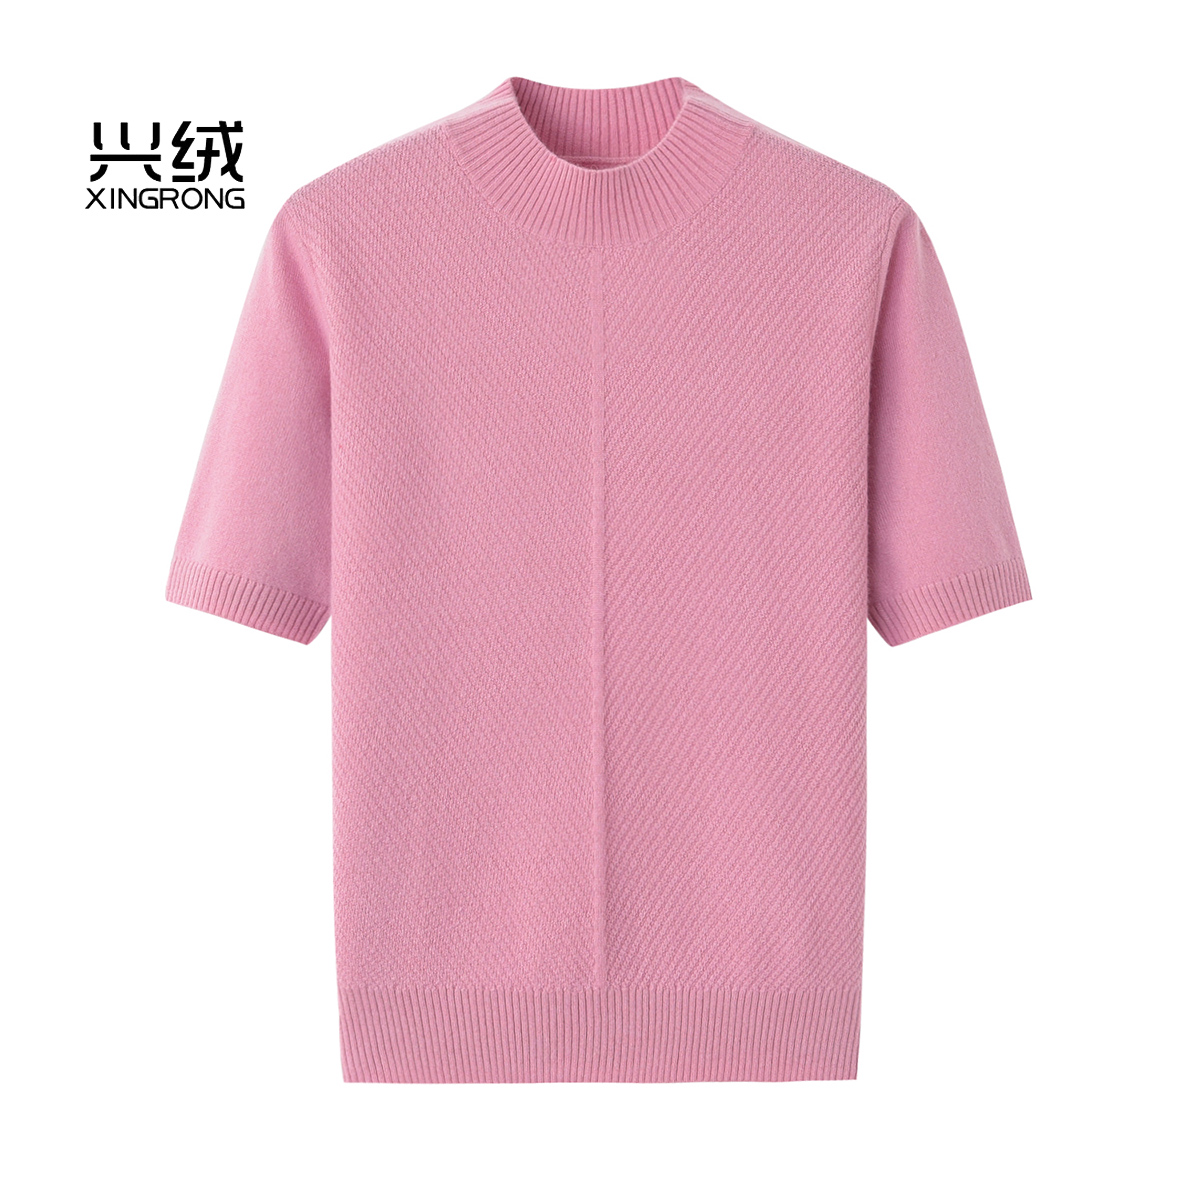 Xingrong 19 autumn and winter new womens half high collar cashmere sweater simple T-shirt short sleeve knitted base coat genuine